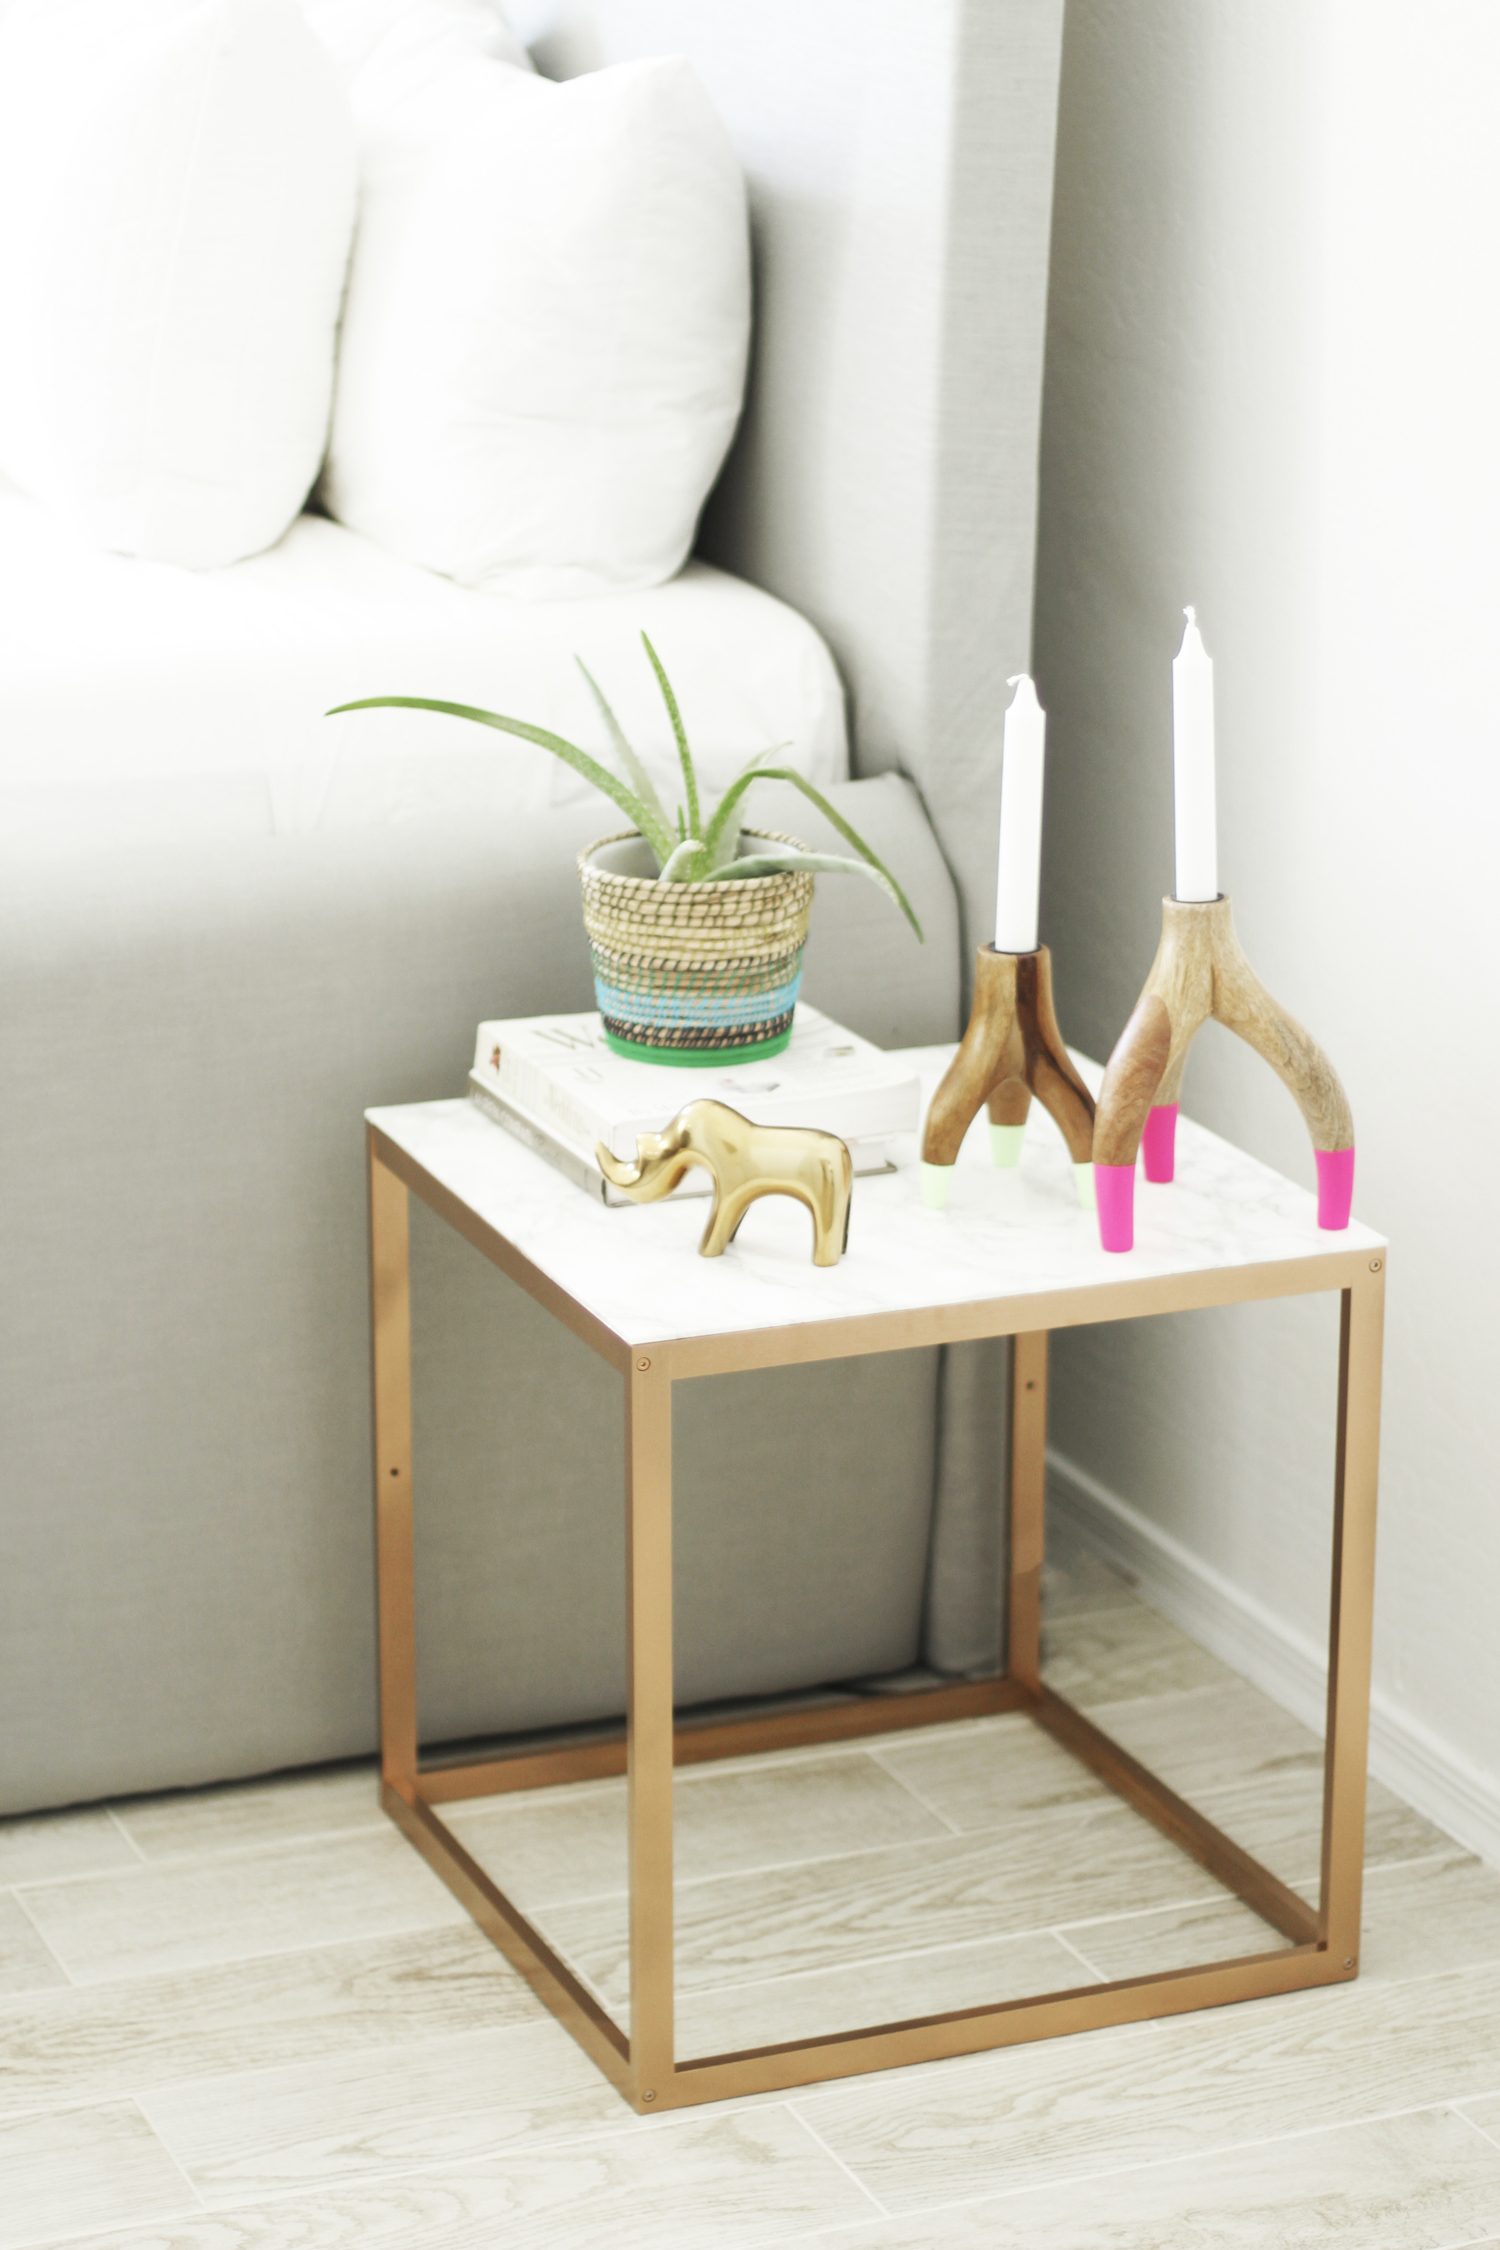 marble and copper end table 3 ikea hack nightstand - End Tables Ikea